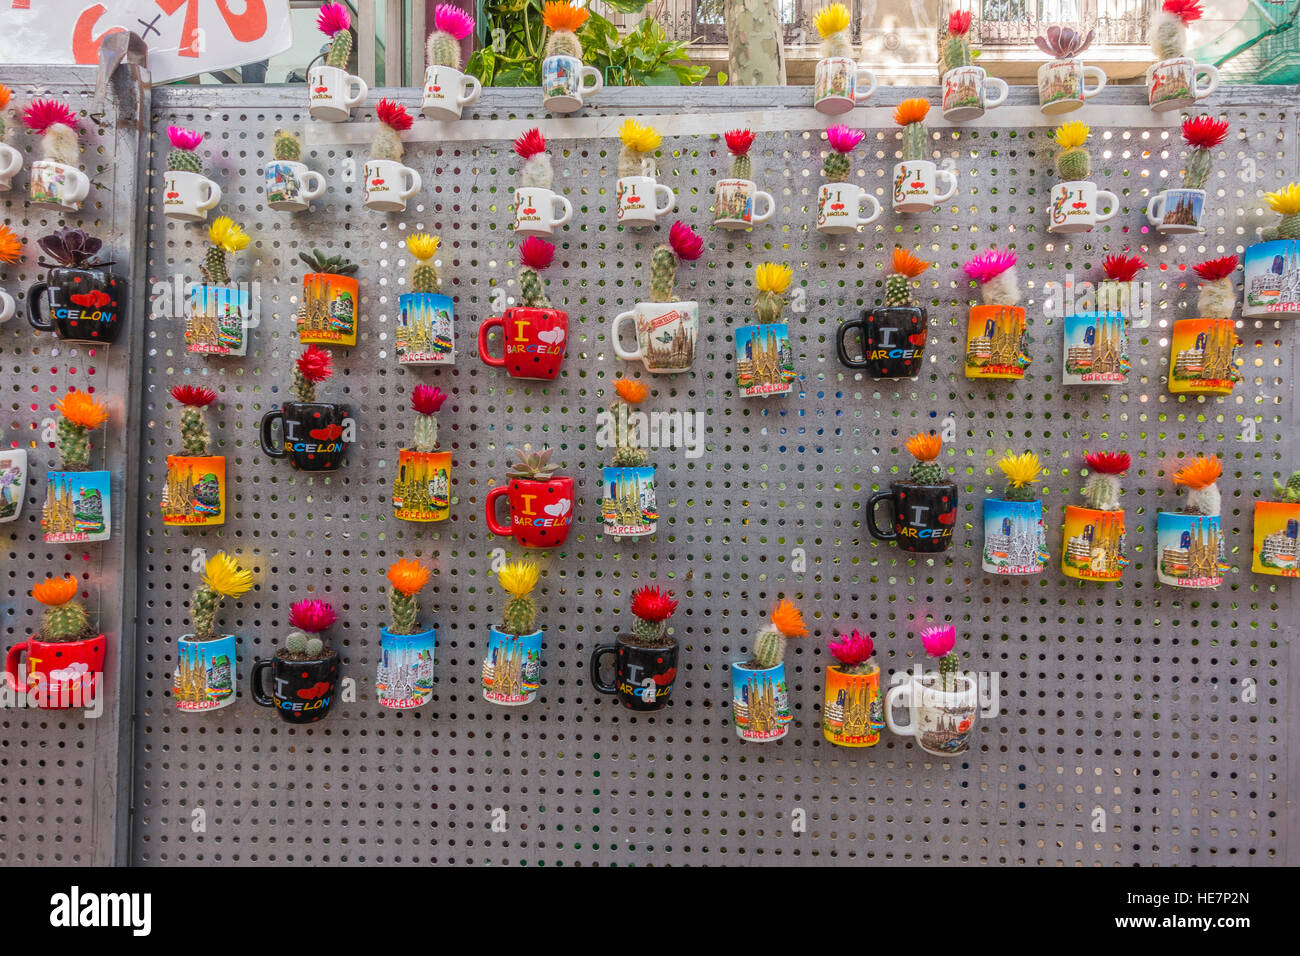 Cactus plants planted in coffee mugs as mementos for sale, on La Rambla, the famous walking street in Barcelona, - Stock Image